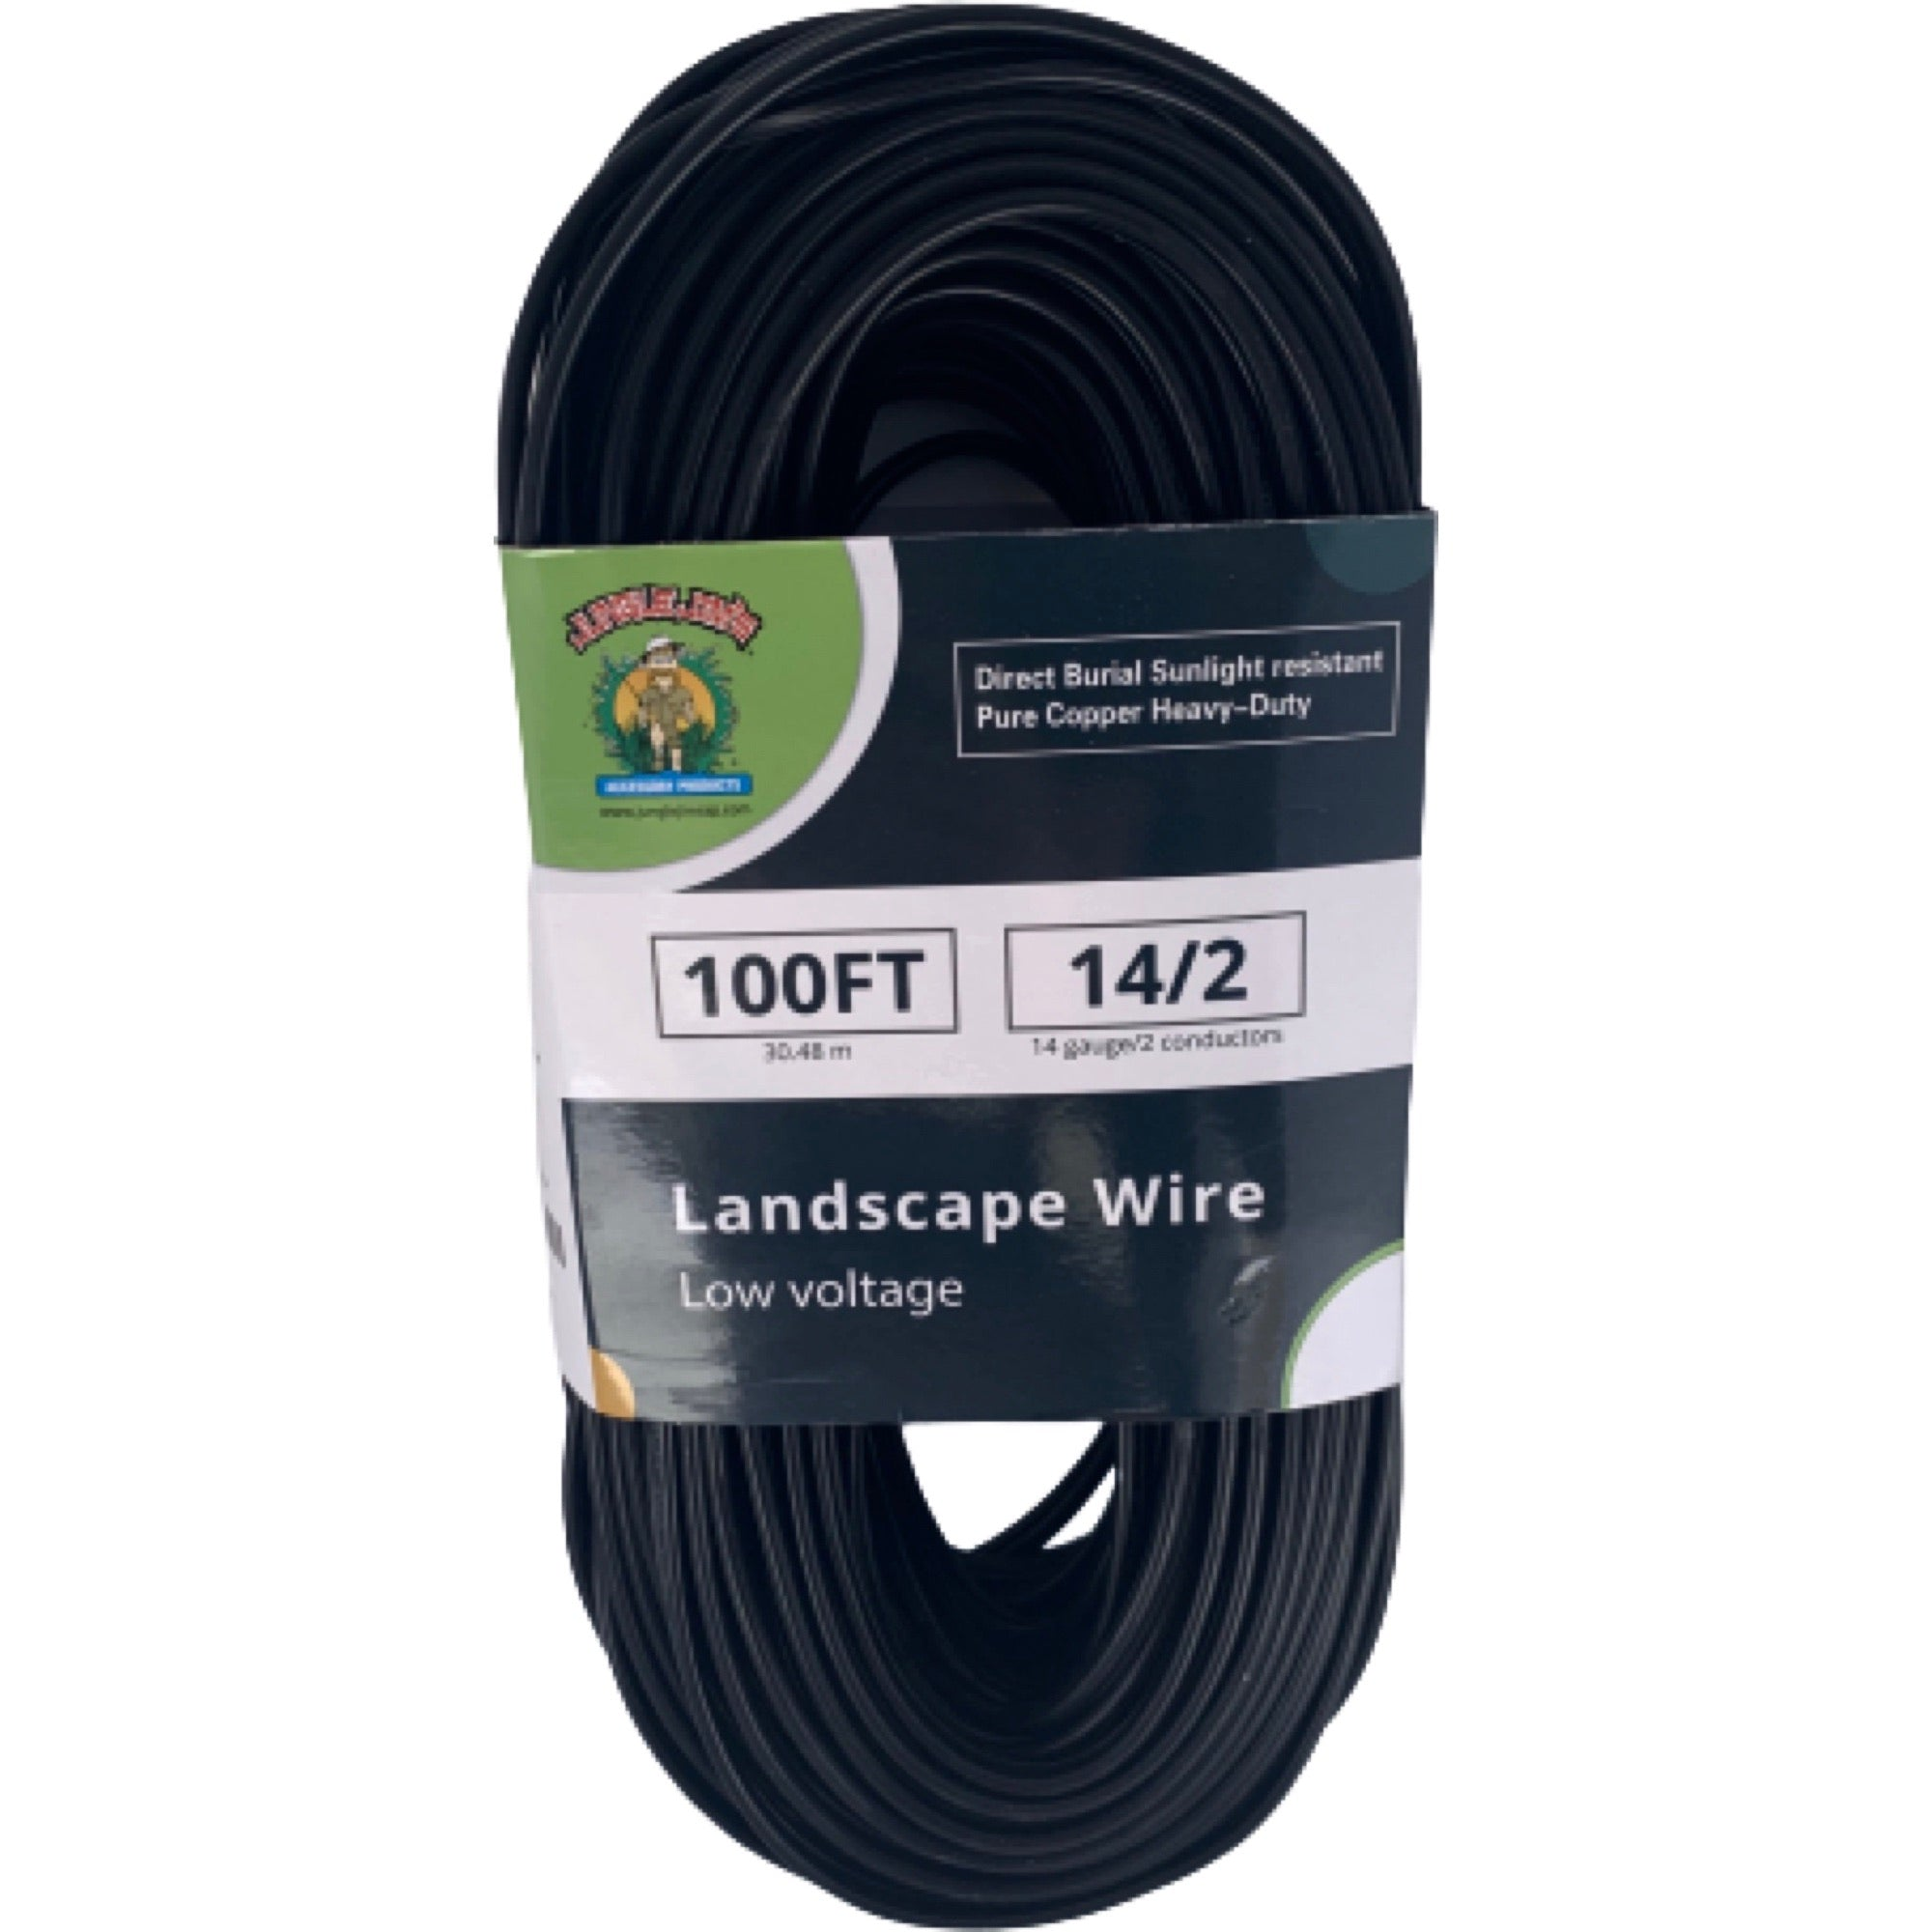 Landscaping Wire & Lighting